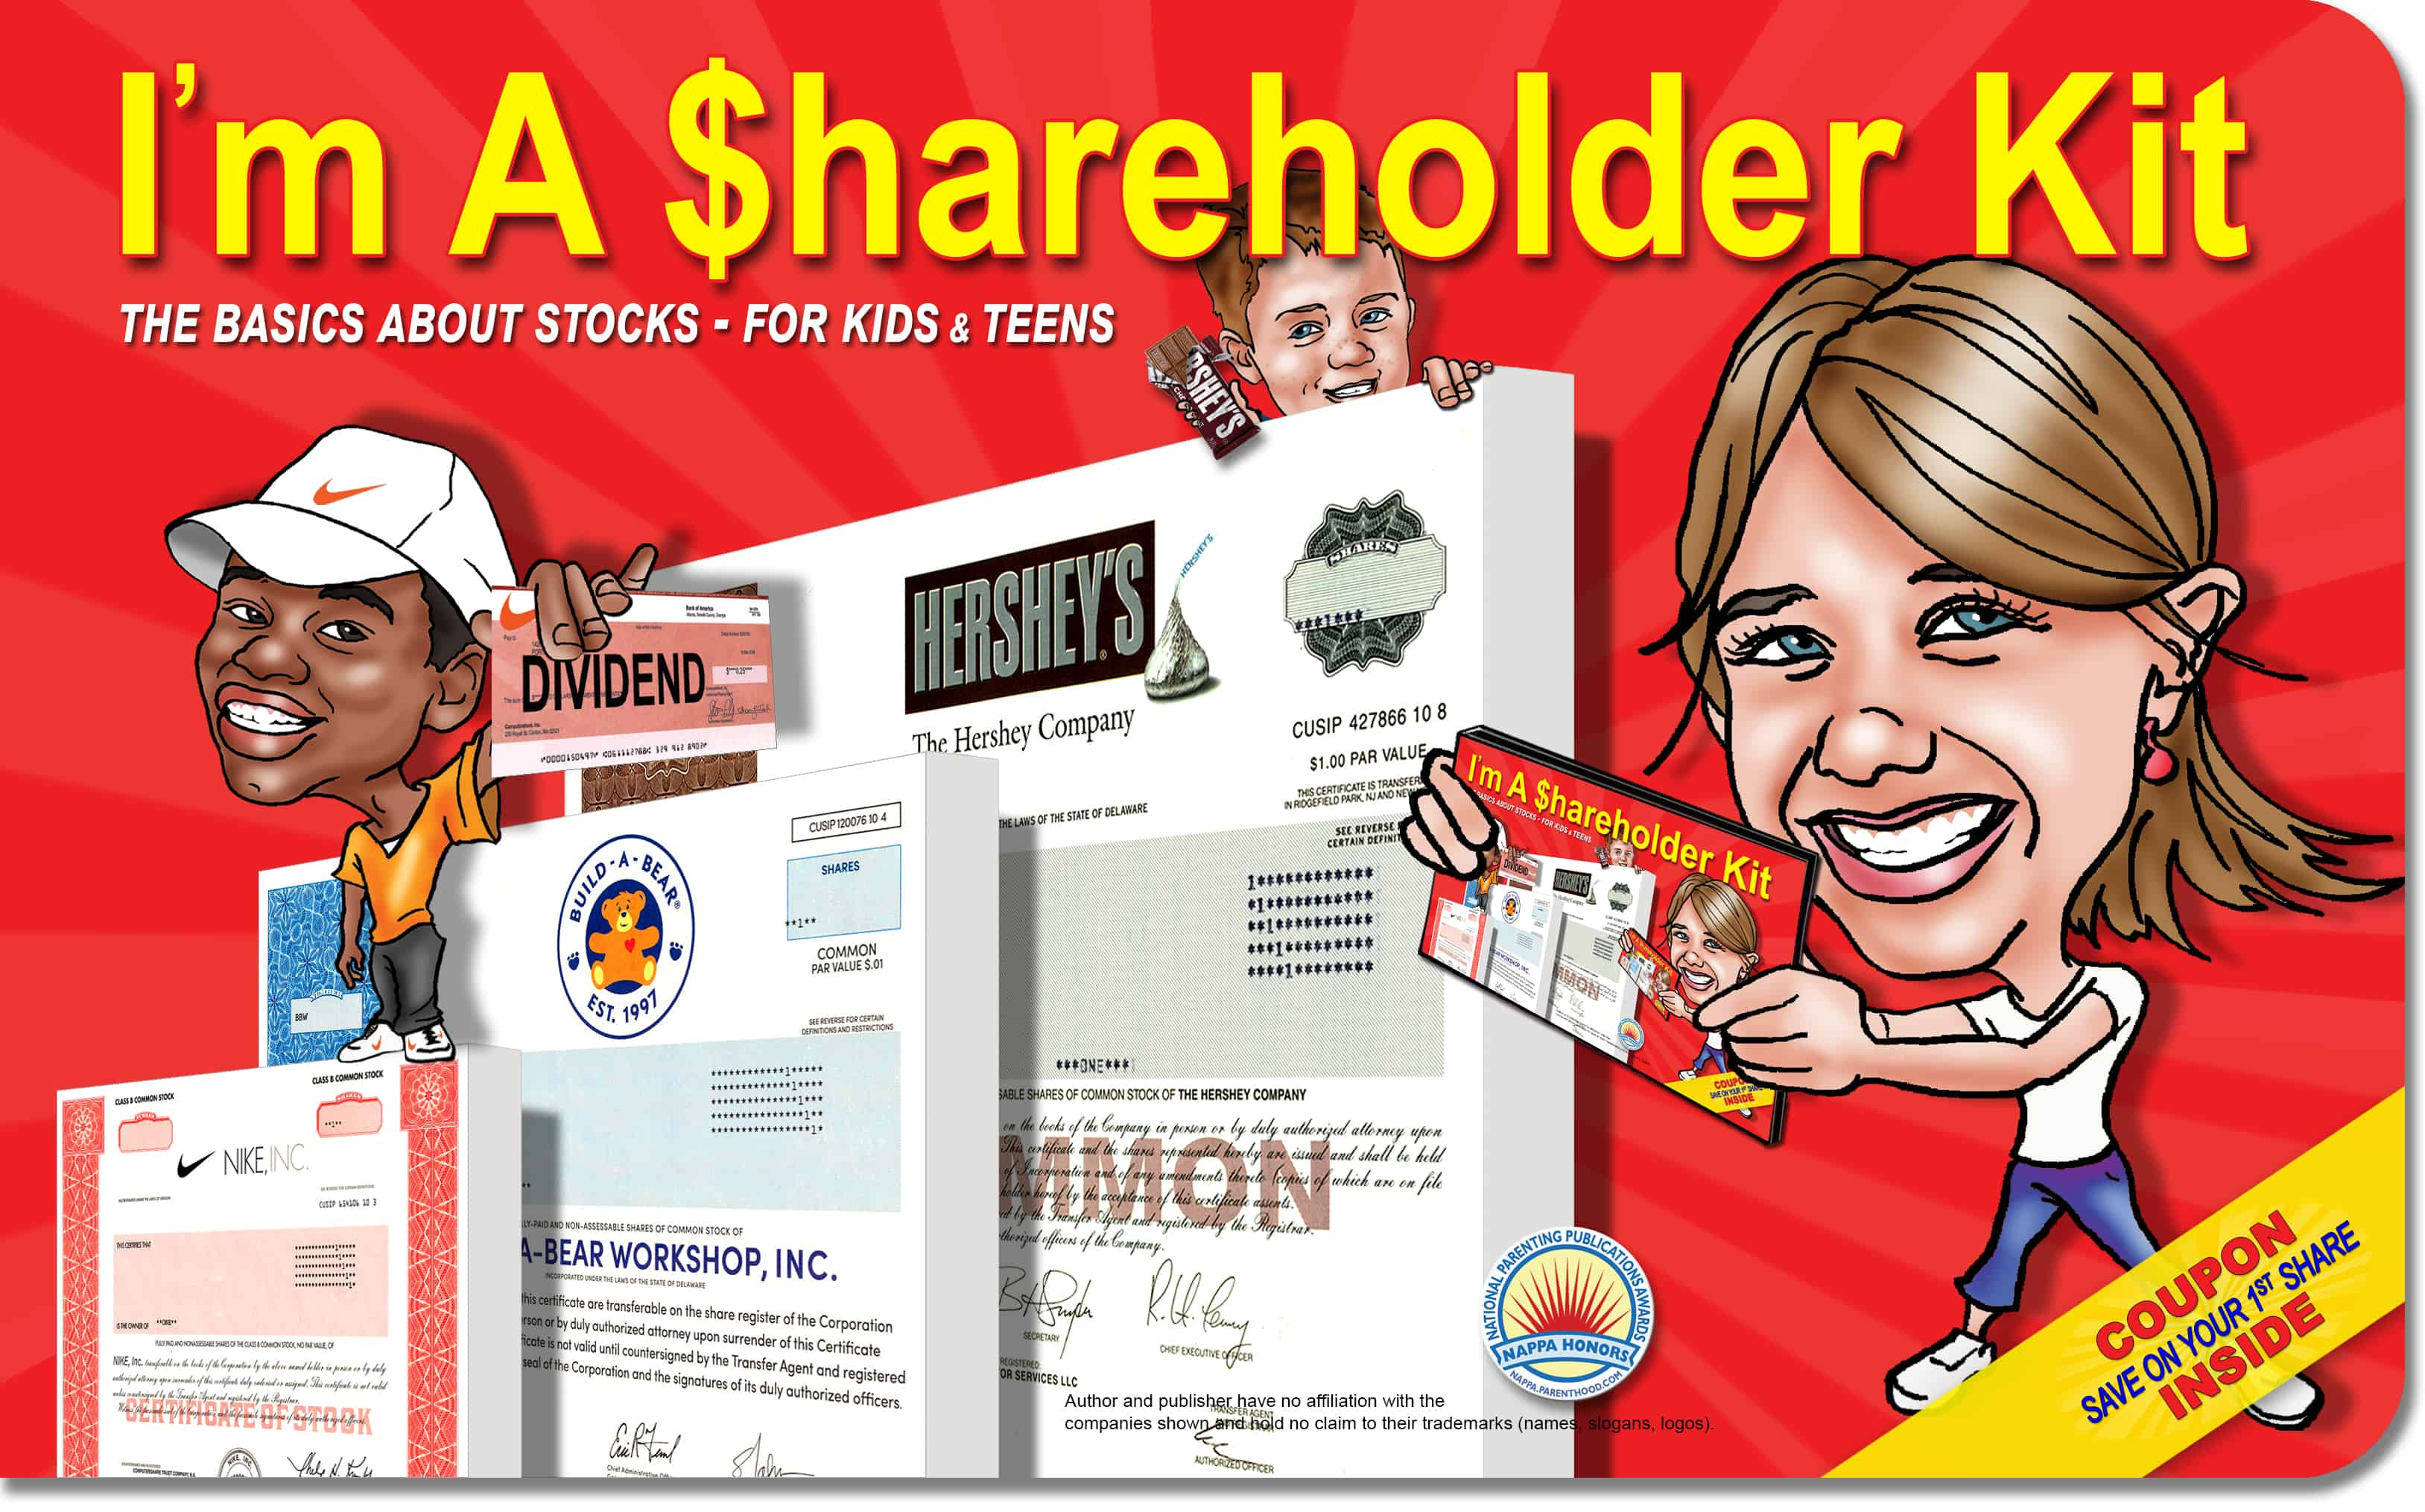 screenshot of I'm a Shareholder Kit cover - investing for kids